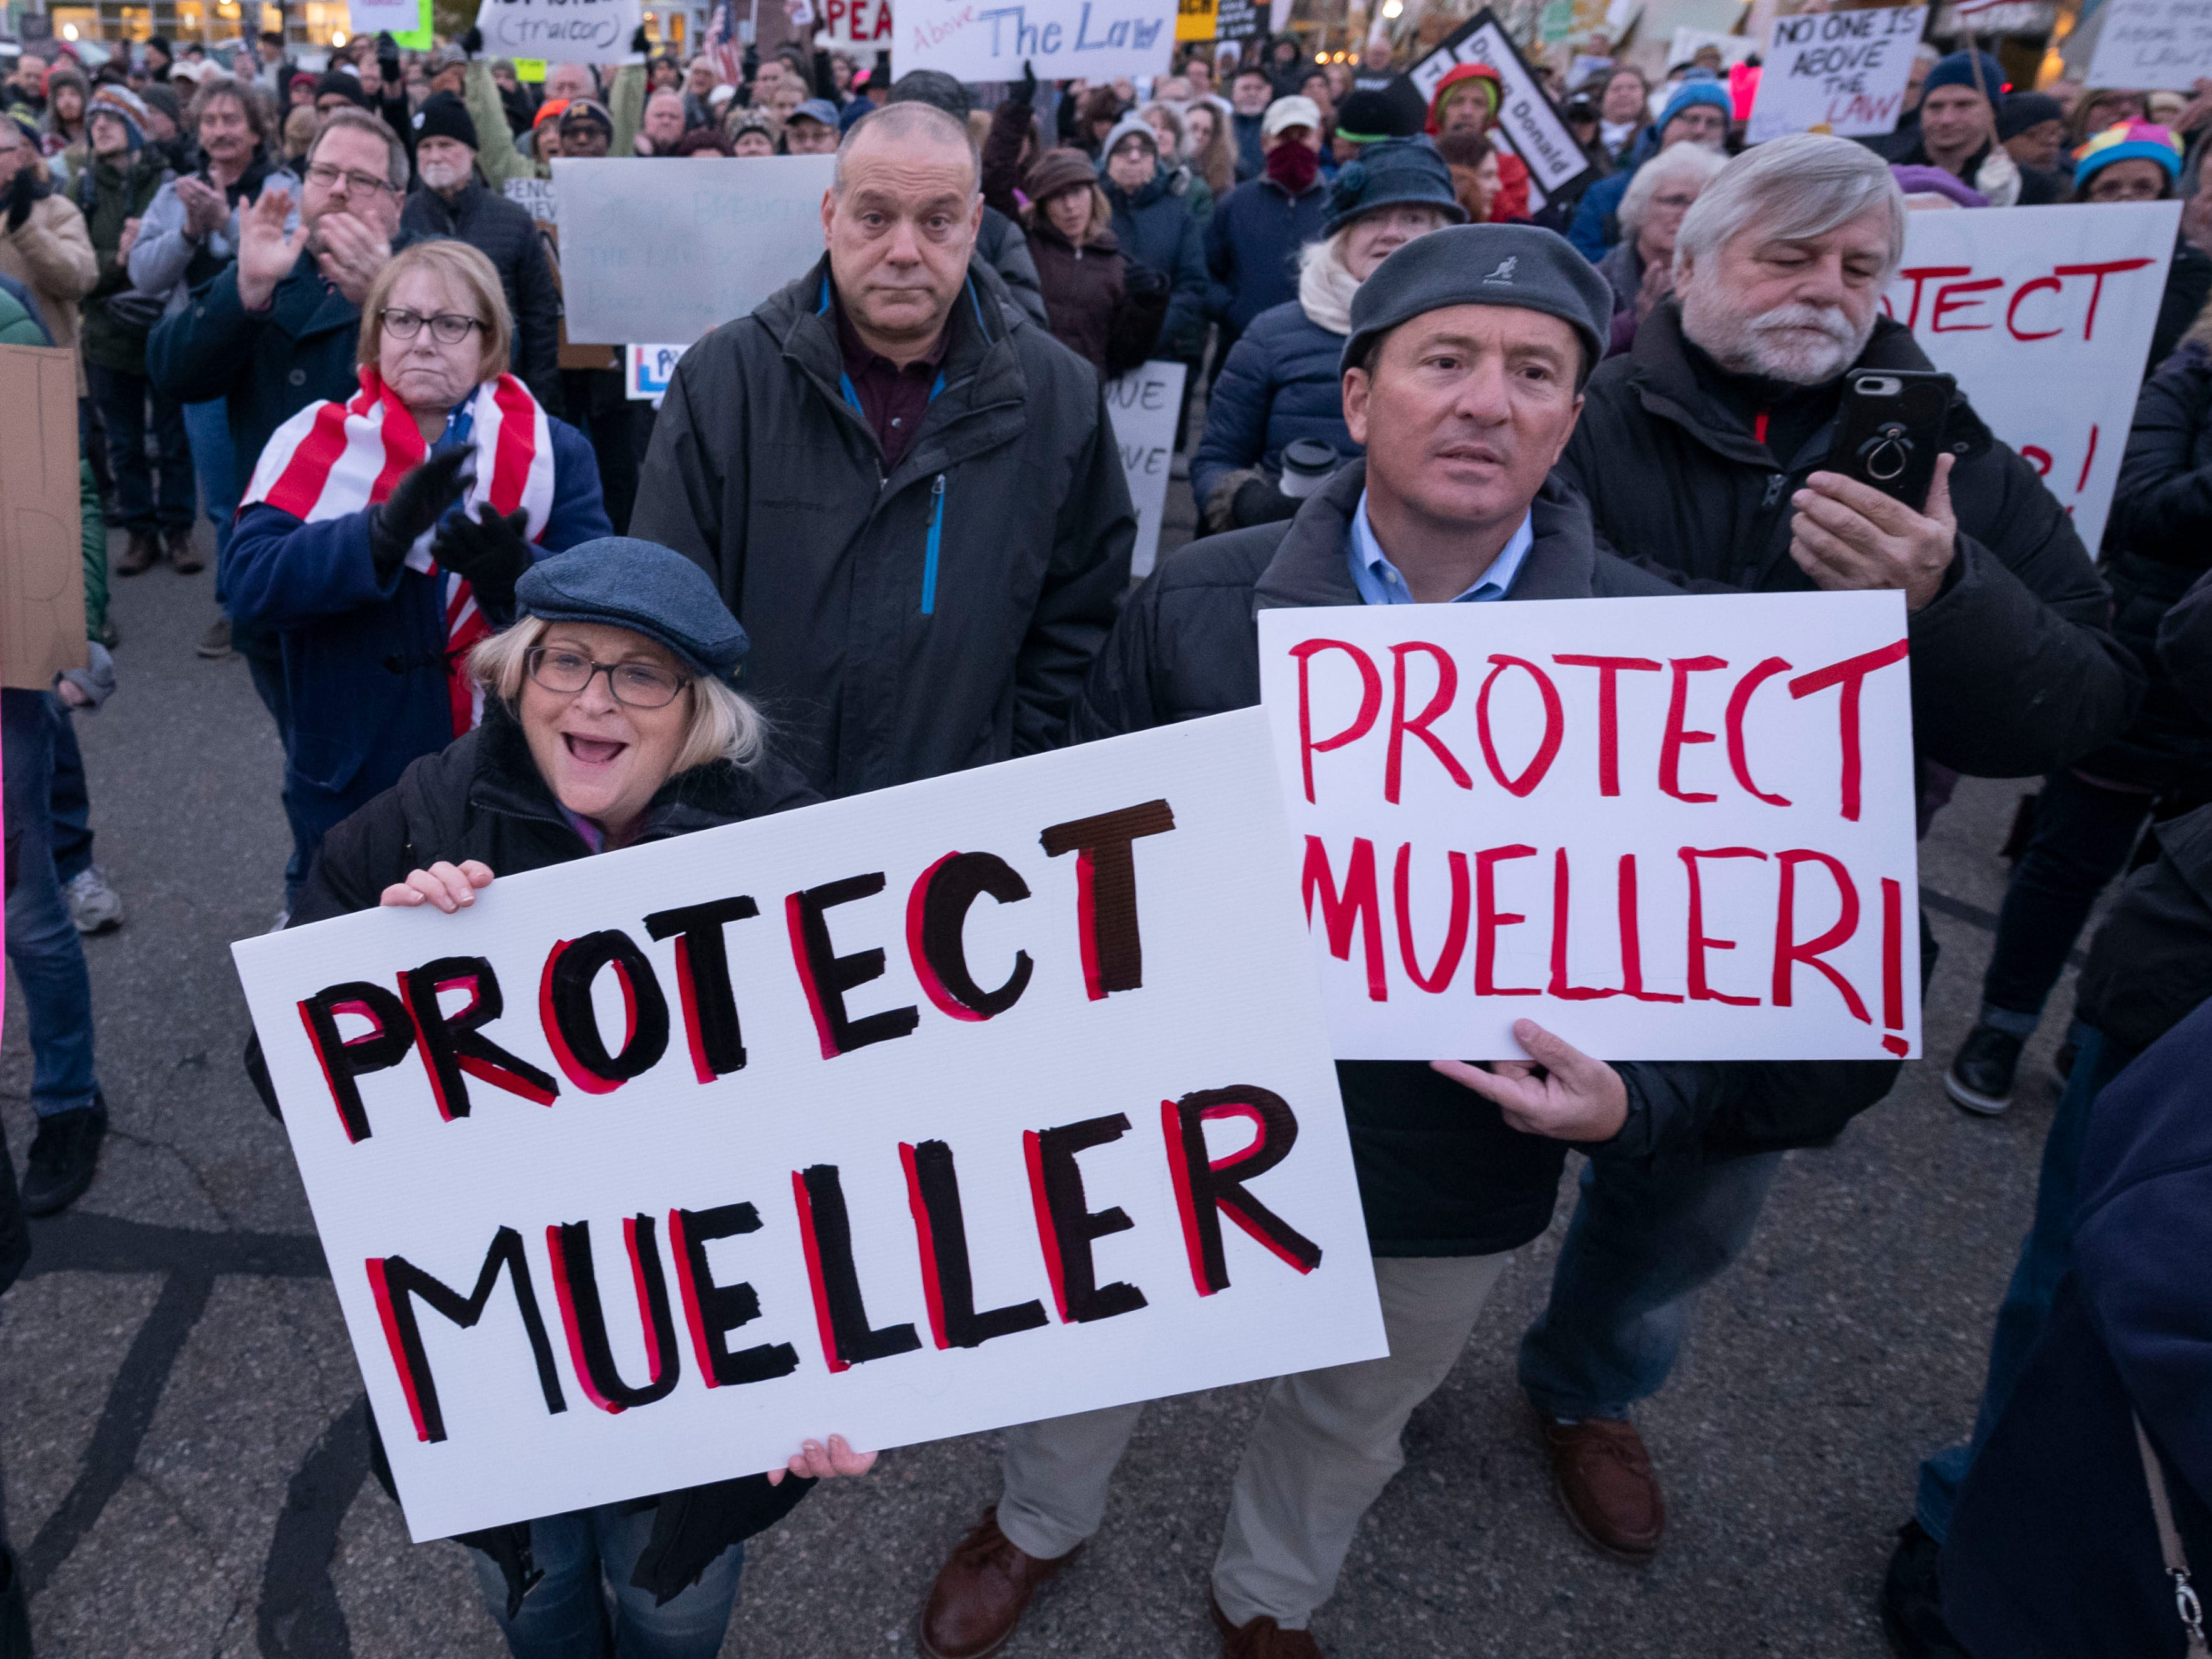 Hundreds of protesters hold signs and chant during a rally at Ferndale City Hall to demand that Special Counsel Robert Mueller's investigation be protected in the wake of the firing of U.S. Attorney General Jeff Sessions.